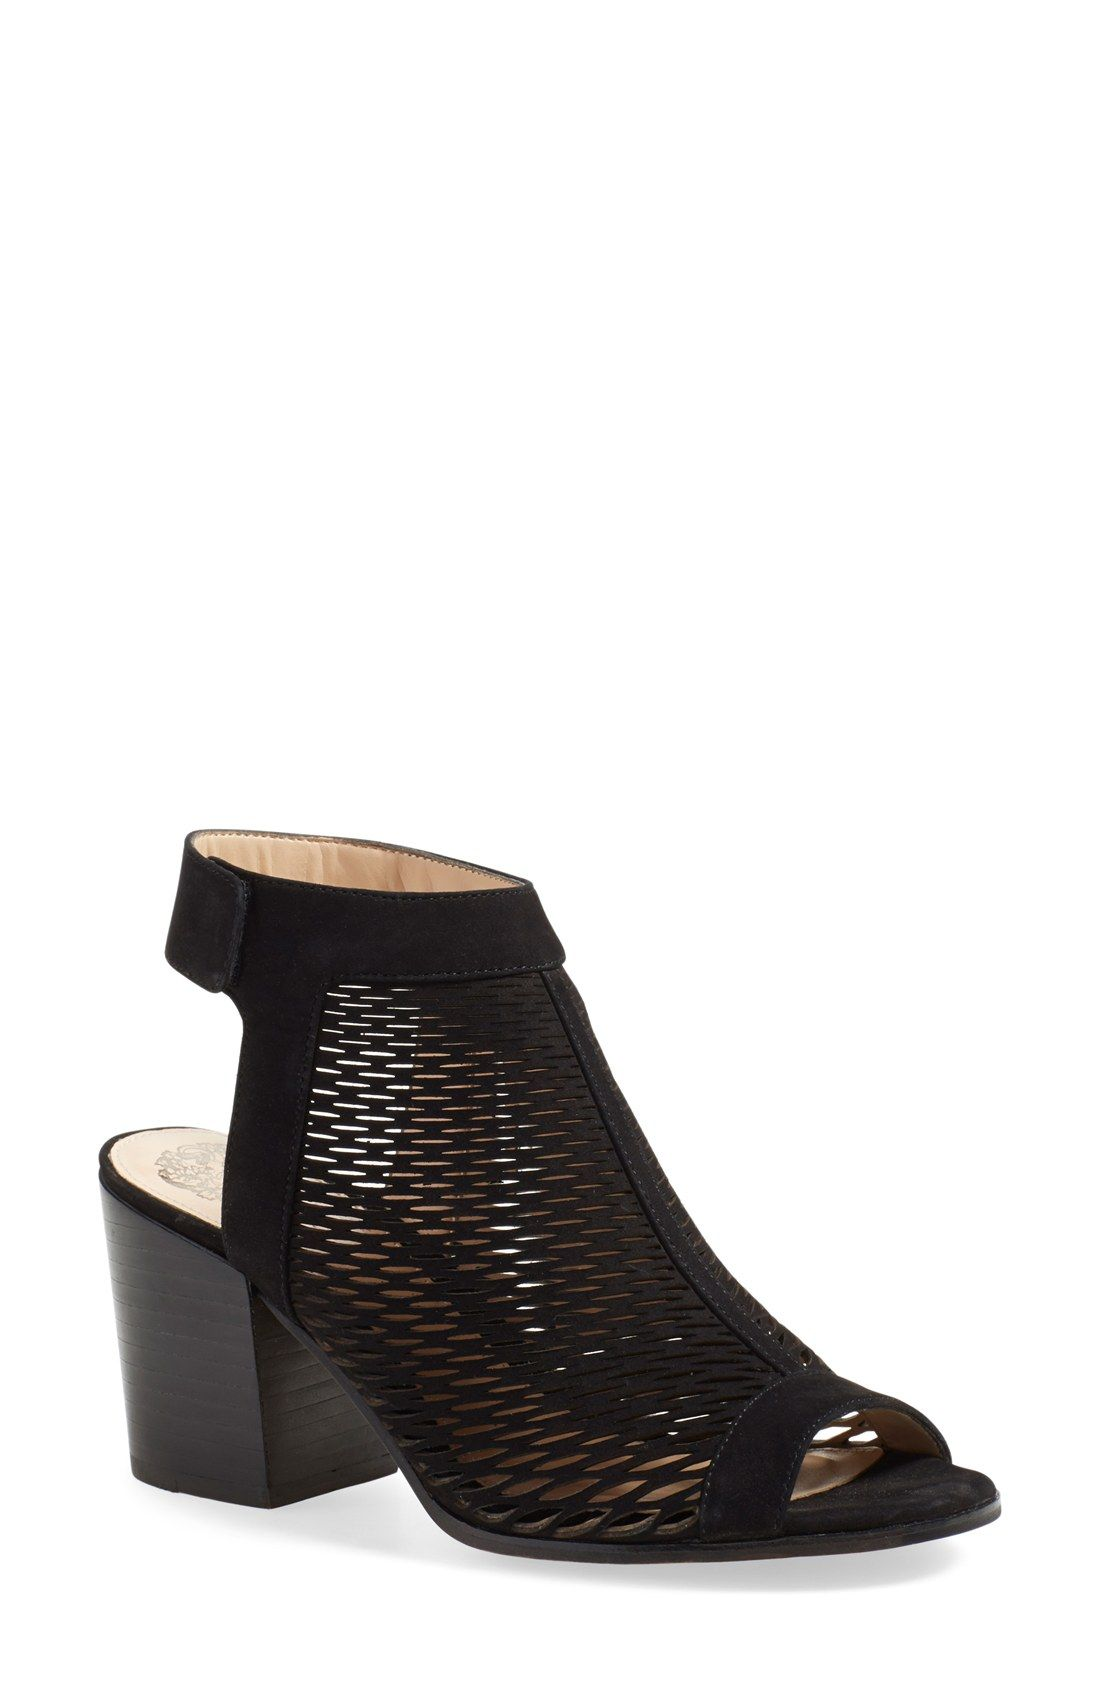 3c68e395092 Vince Camuto  Lavette  Perforated Peep Toe Bootie (Women)